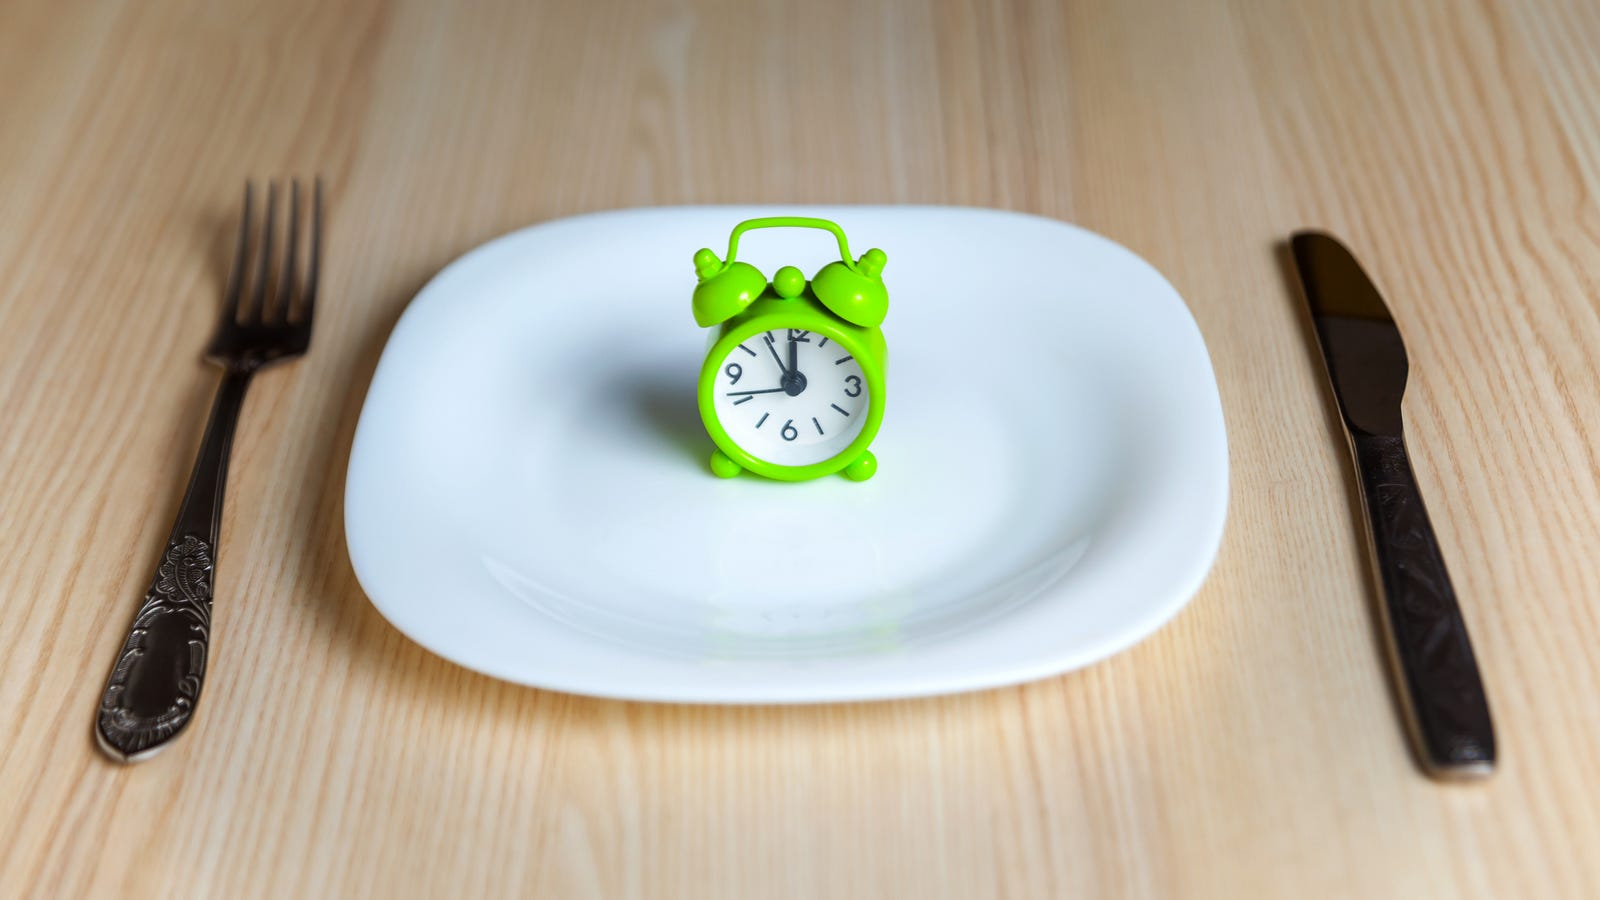 Study: Sorry, intermittent fasting is no better than regular dieting